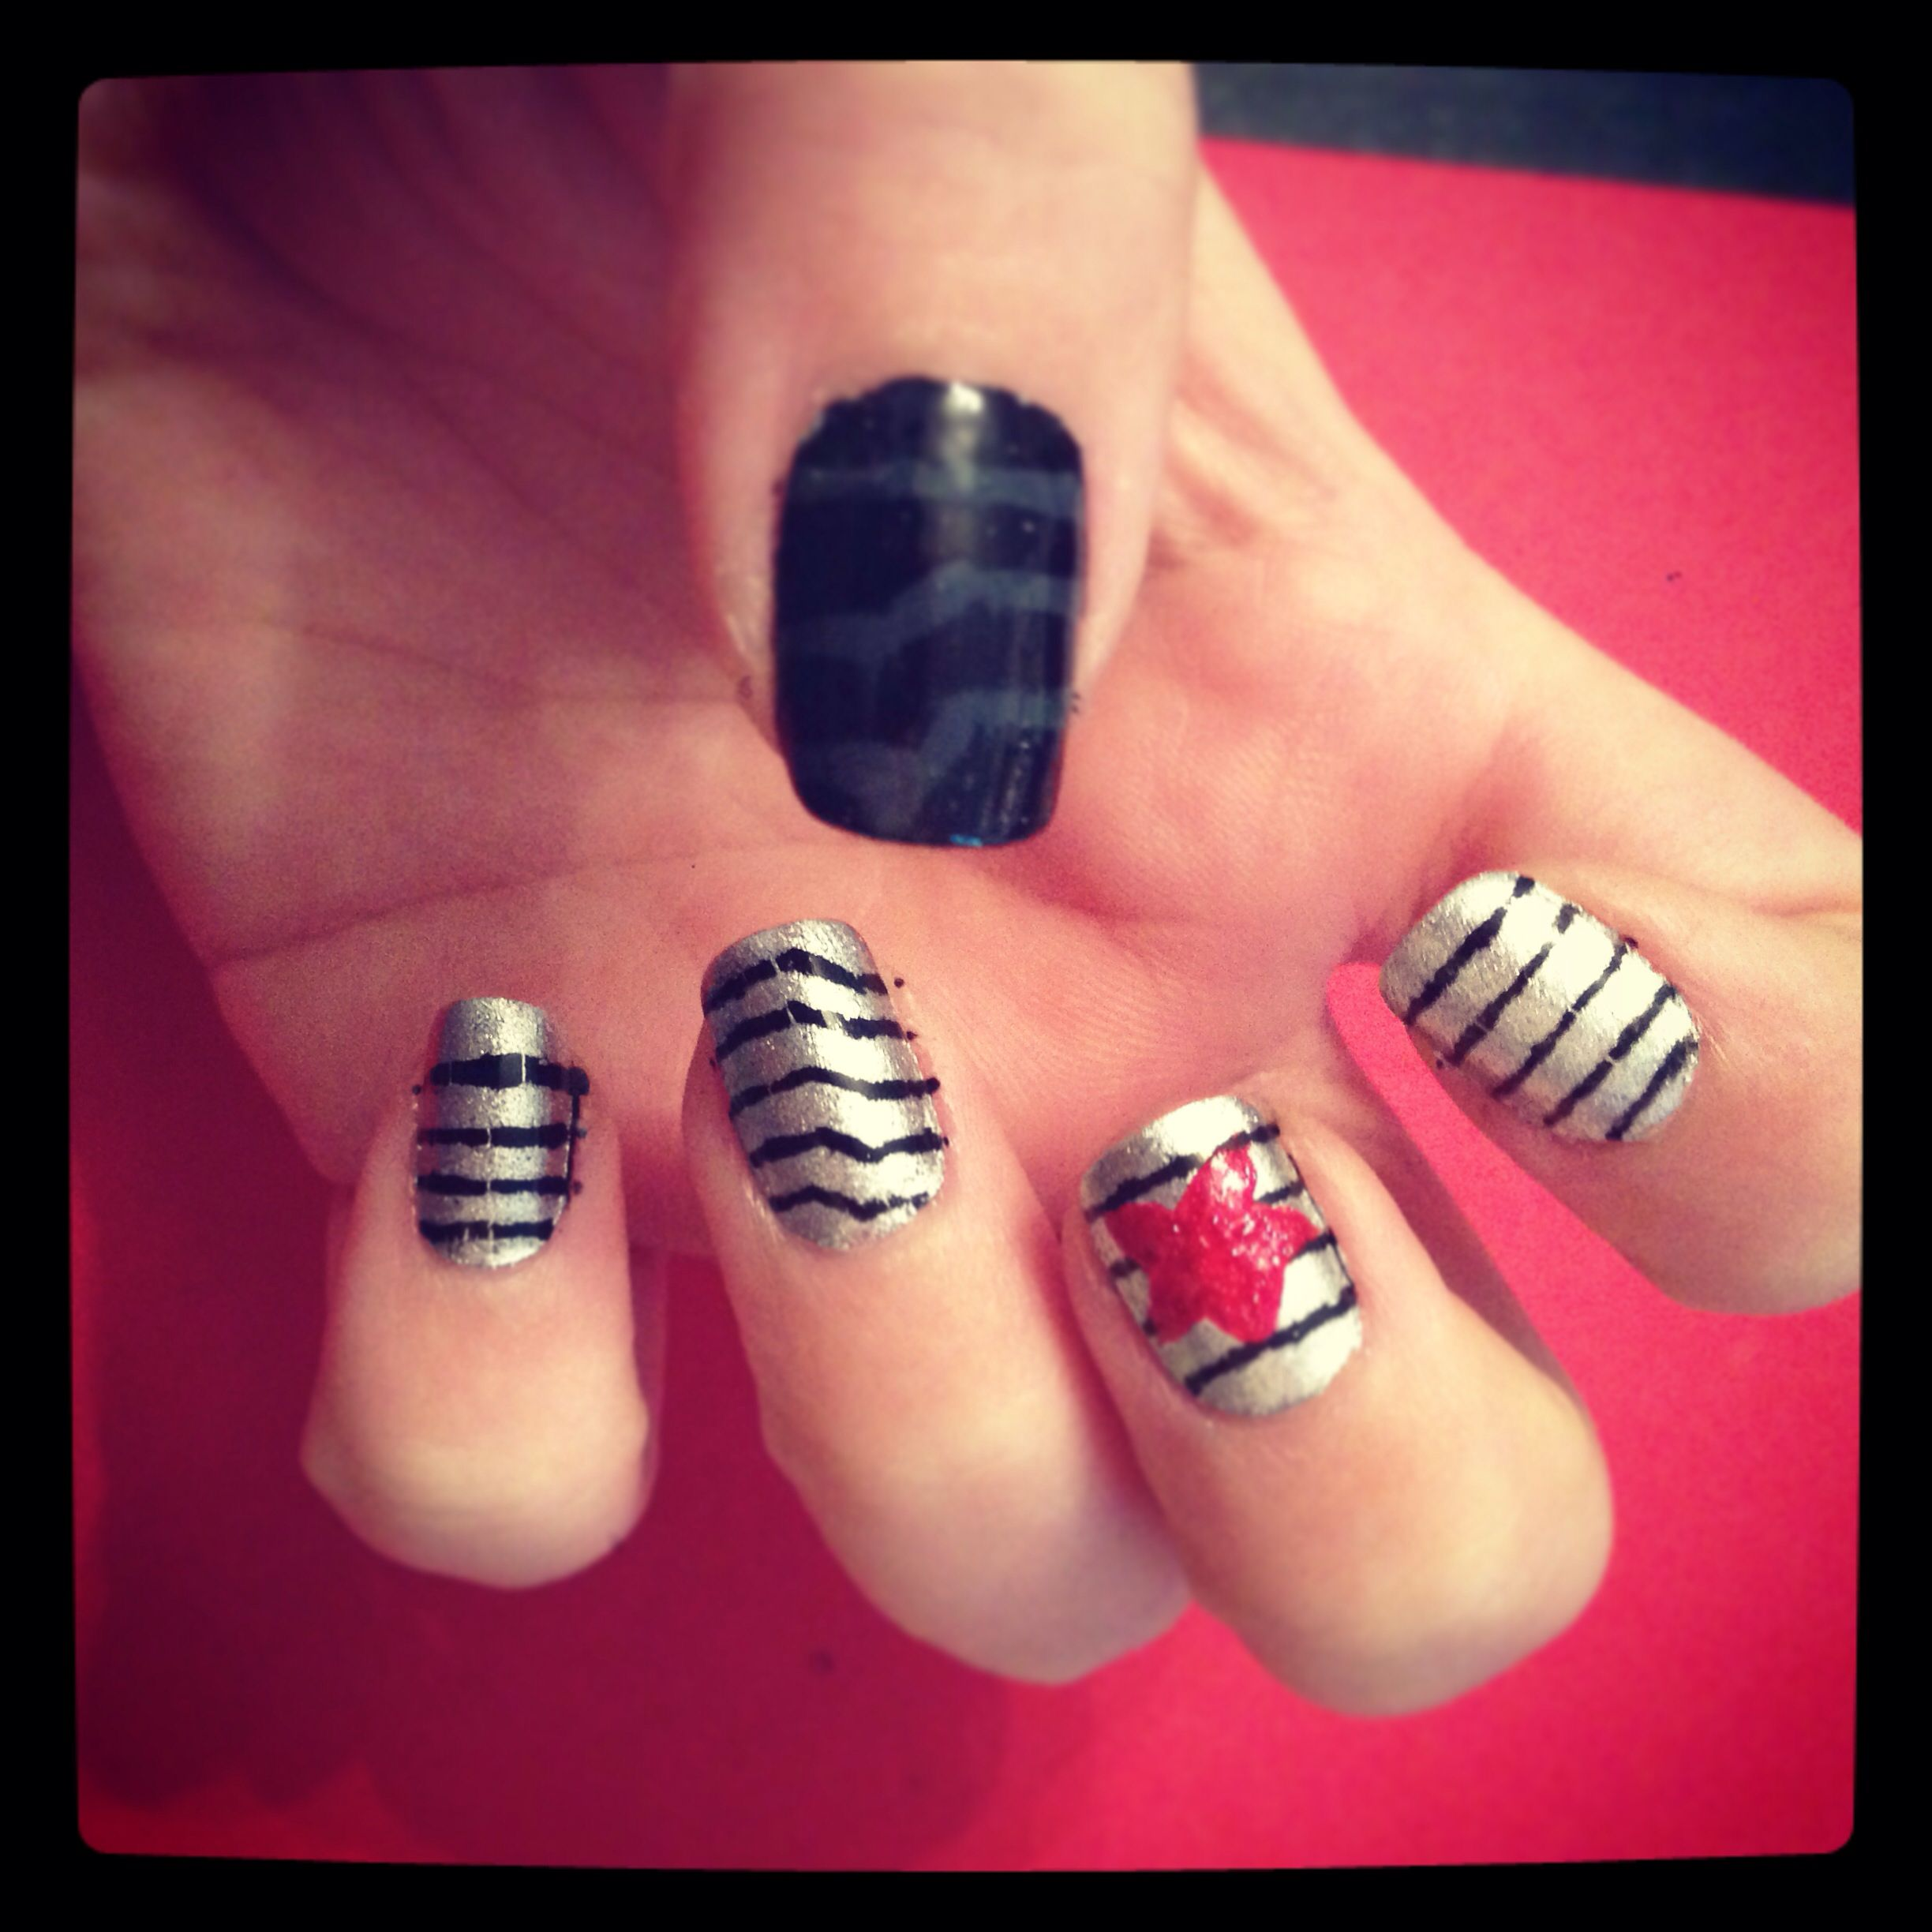 Soldier nail